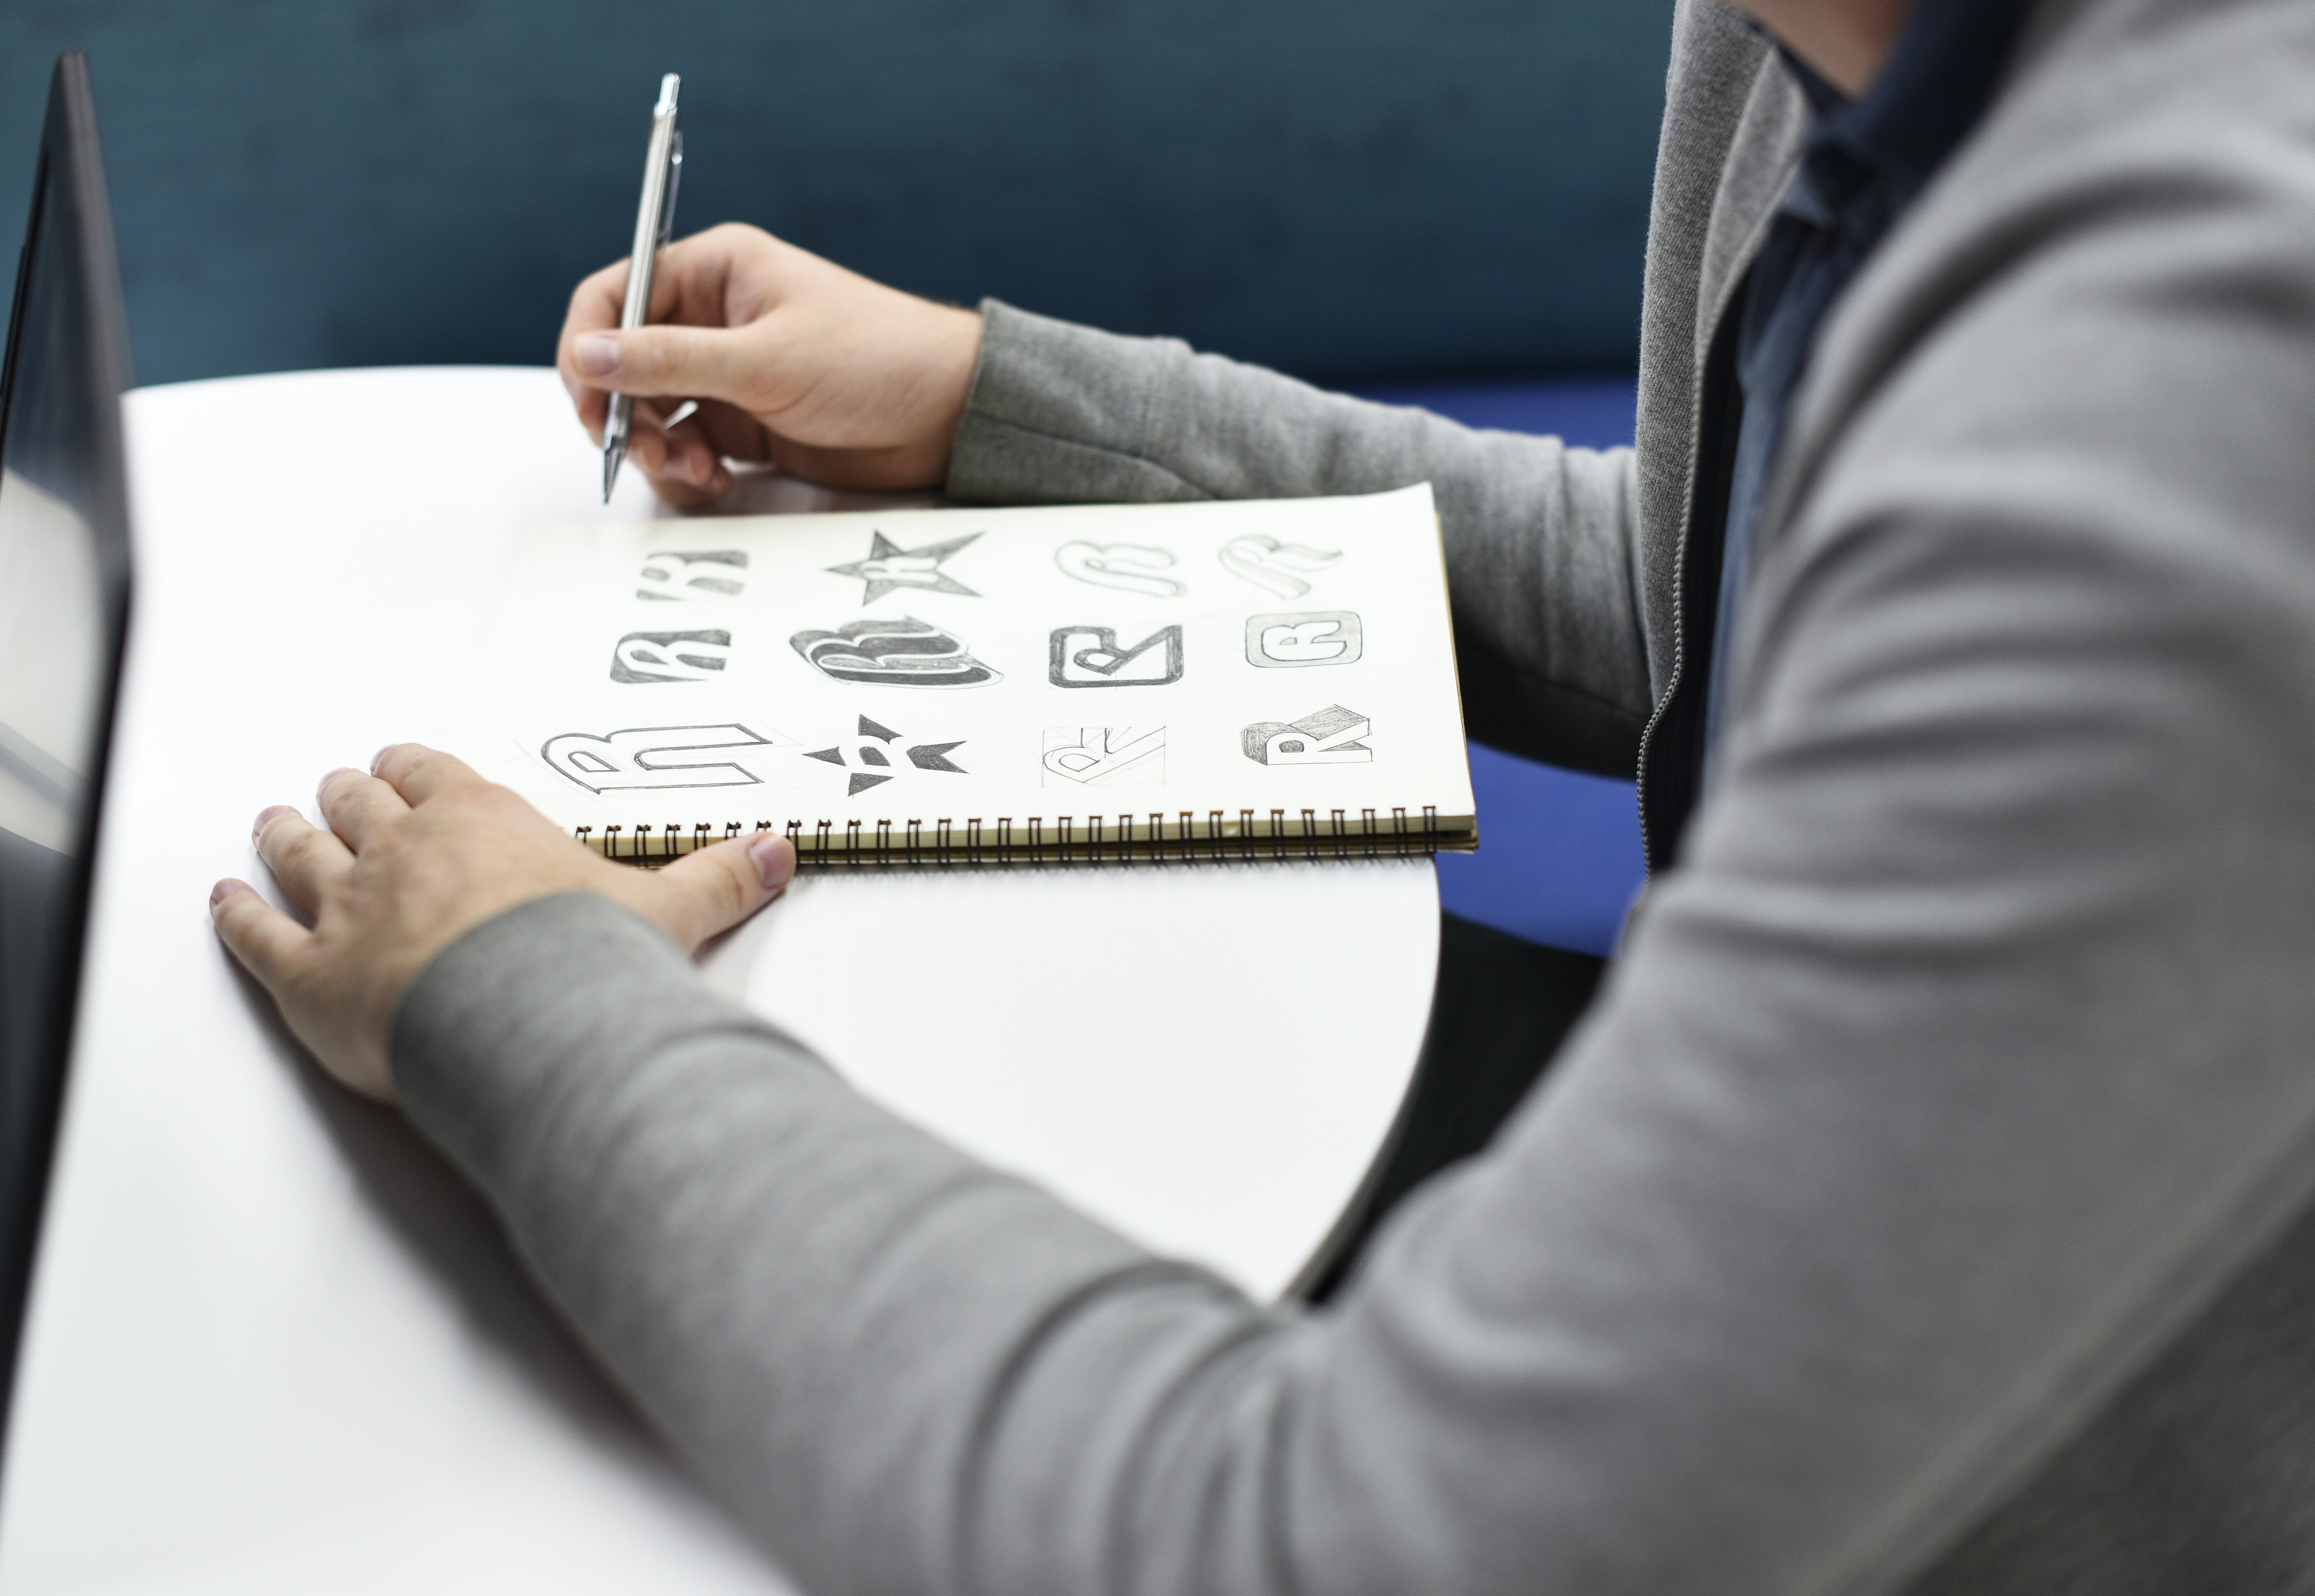 person holding gray retractable pen sitting on chair infront of notebook filled with letter R calligraphy